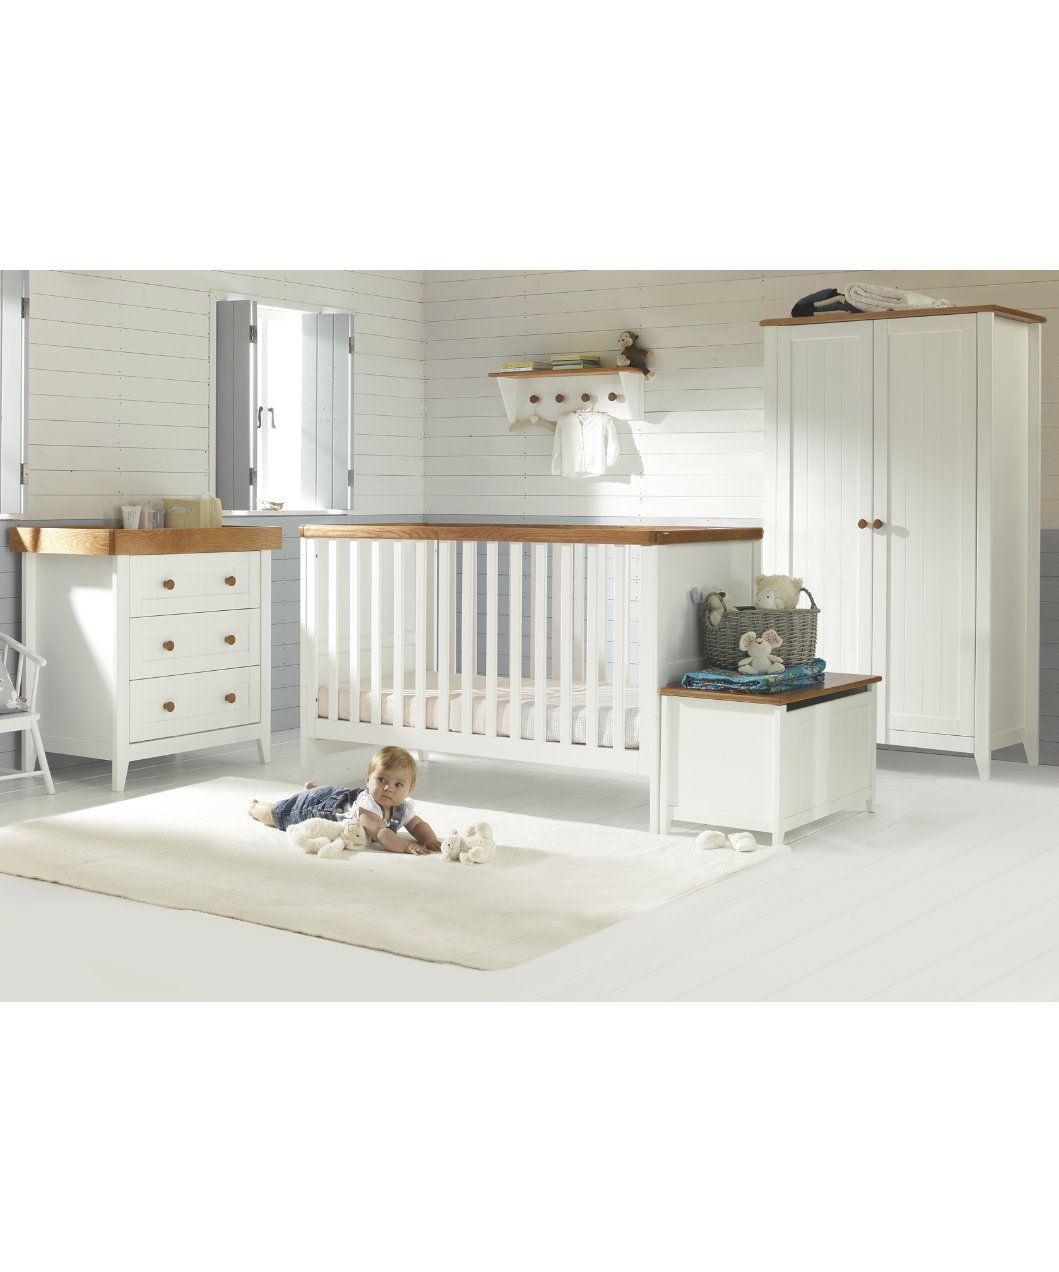 Mothercare Nautical Bedding: Cot Bedding, White Cot Bed, White